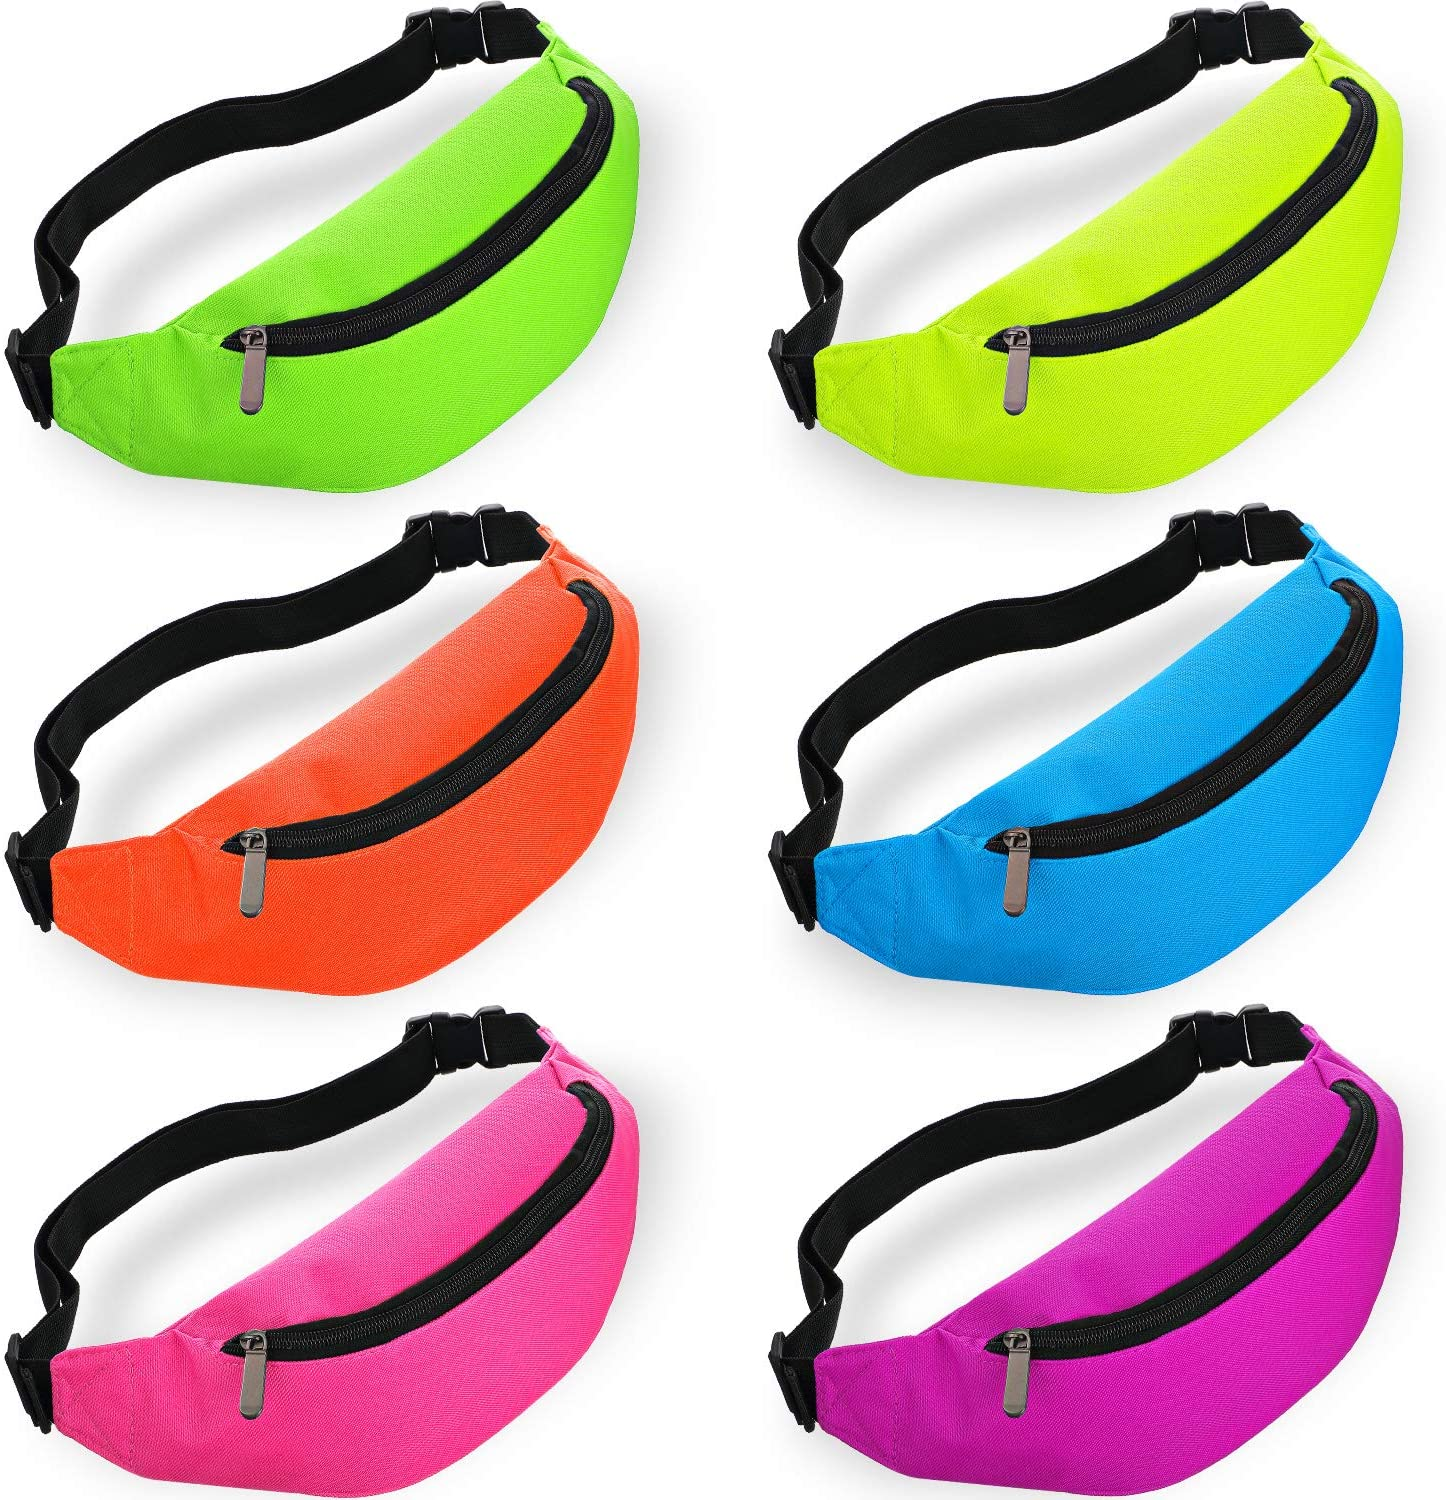 Pai love neon fanny pack neon fanny packs fanny packs personalized gift neon party family birthday birthday gift gift pai gift